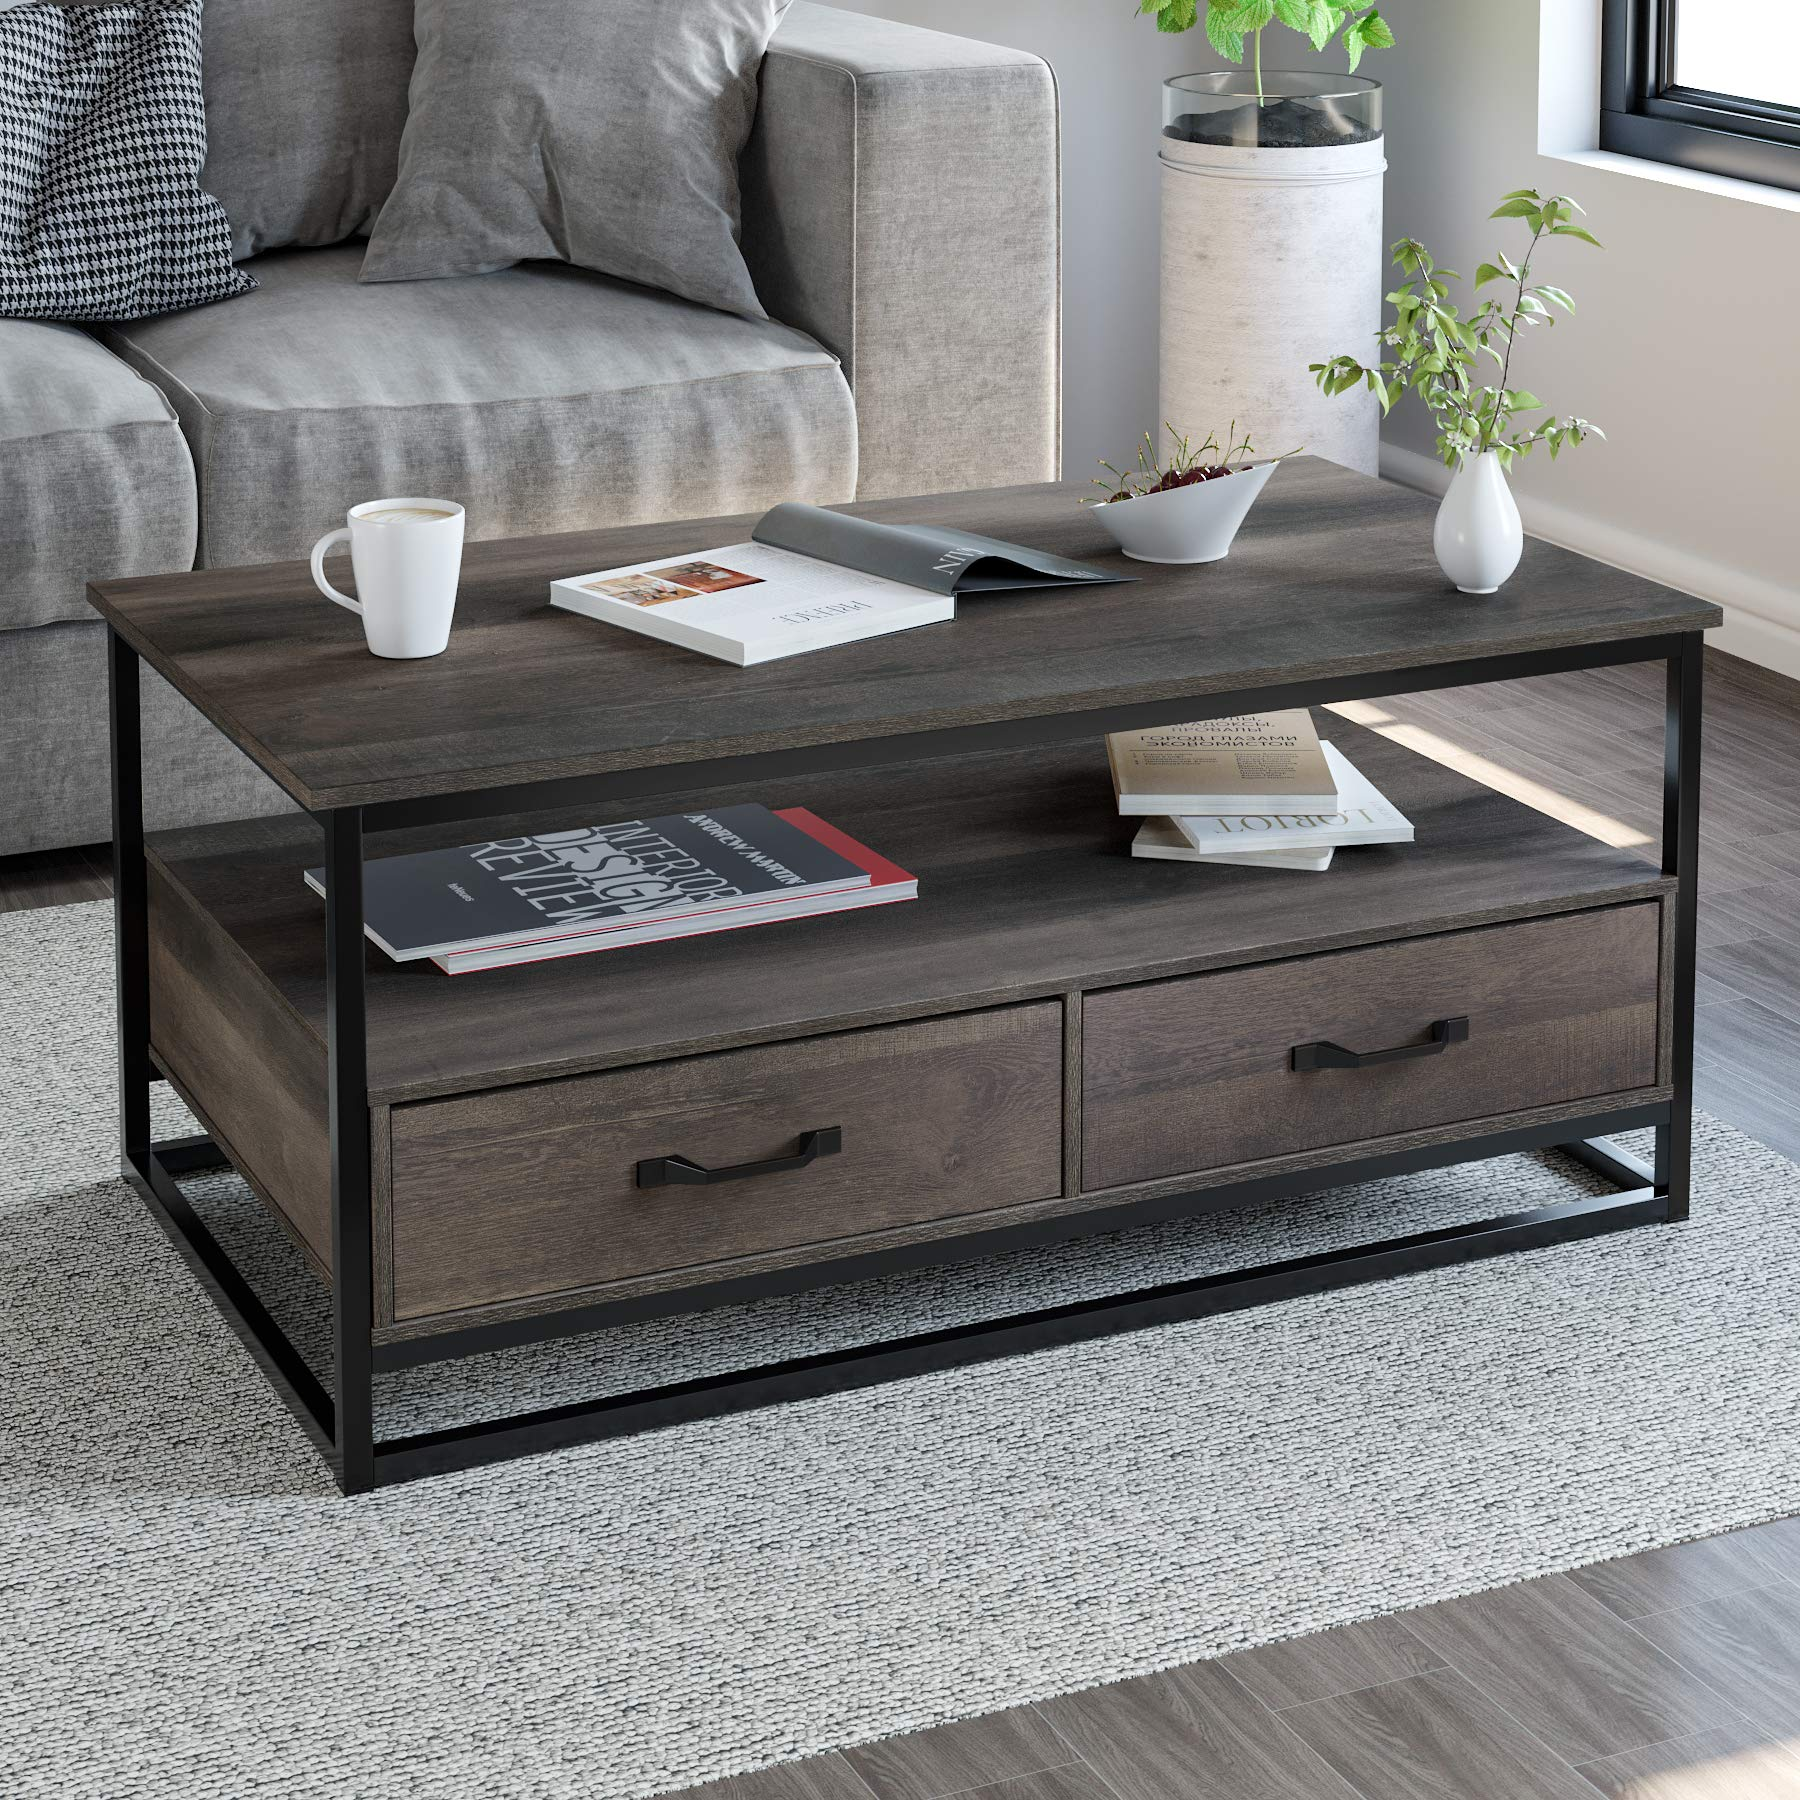 HOMECHO Mid Century Modern Coffee Table with 2 Drawers and Storage Shelf, 43.3'' x 23.6'', Industrial Accent Cocktail Table with Wood Top and Sturdy Metal Frame, for Living Room Home, Rustic Brown by HOMECHO